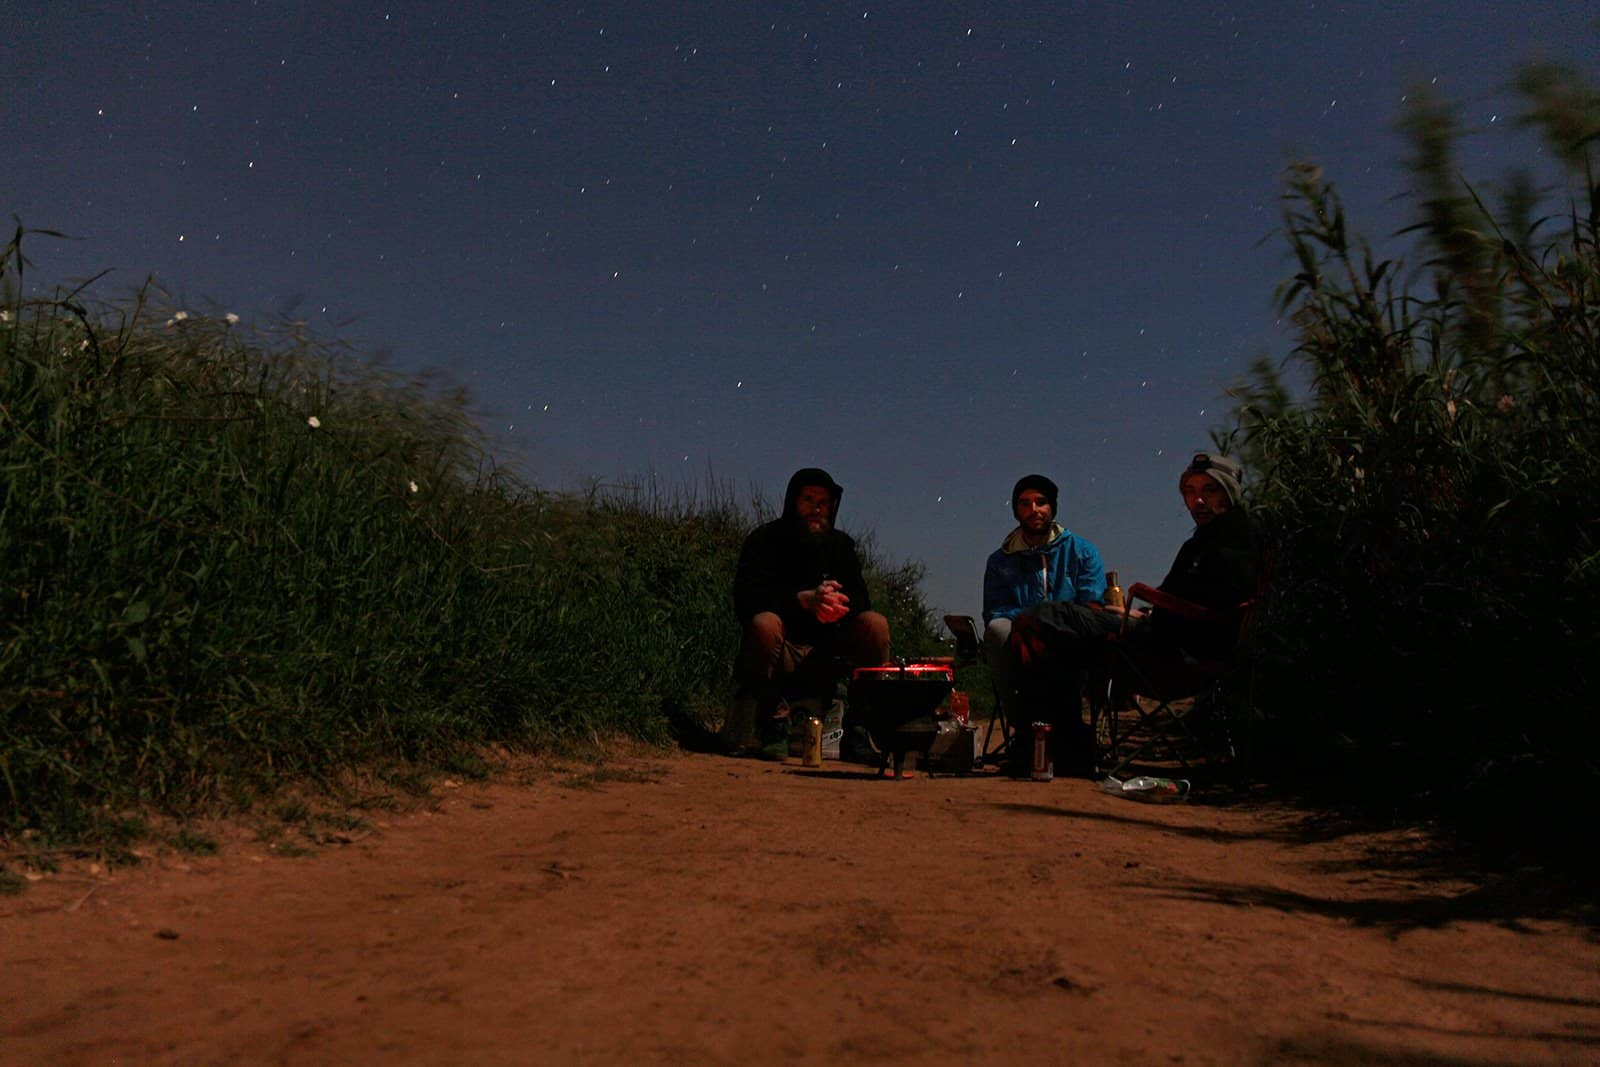 Overburned hotdogs, cheap beer, million stars and good friends.